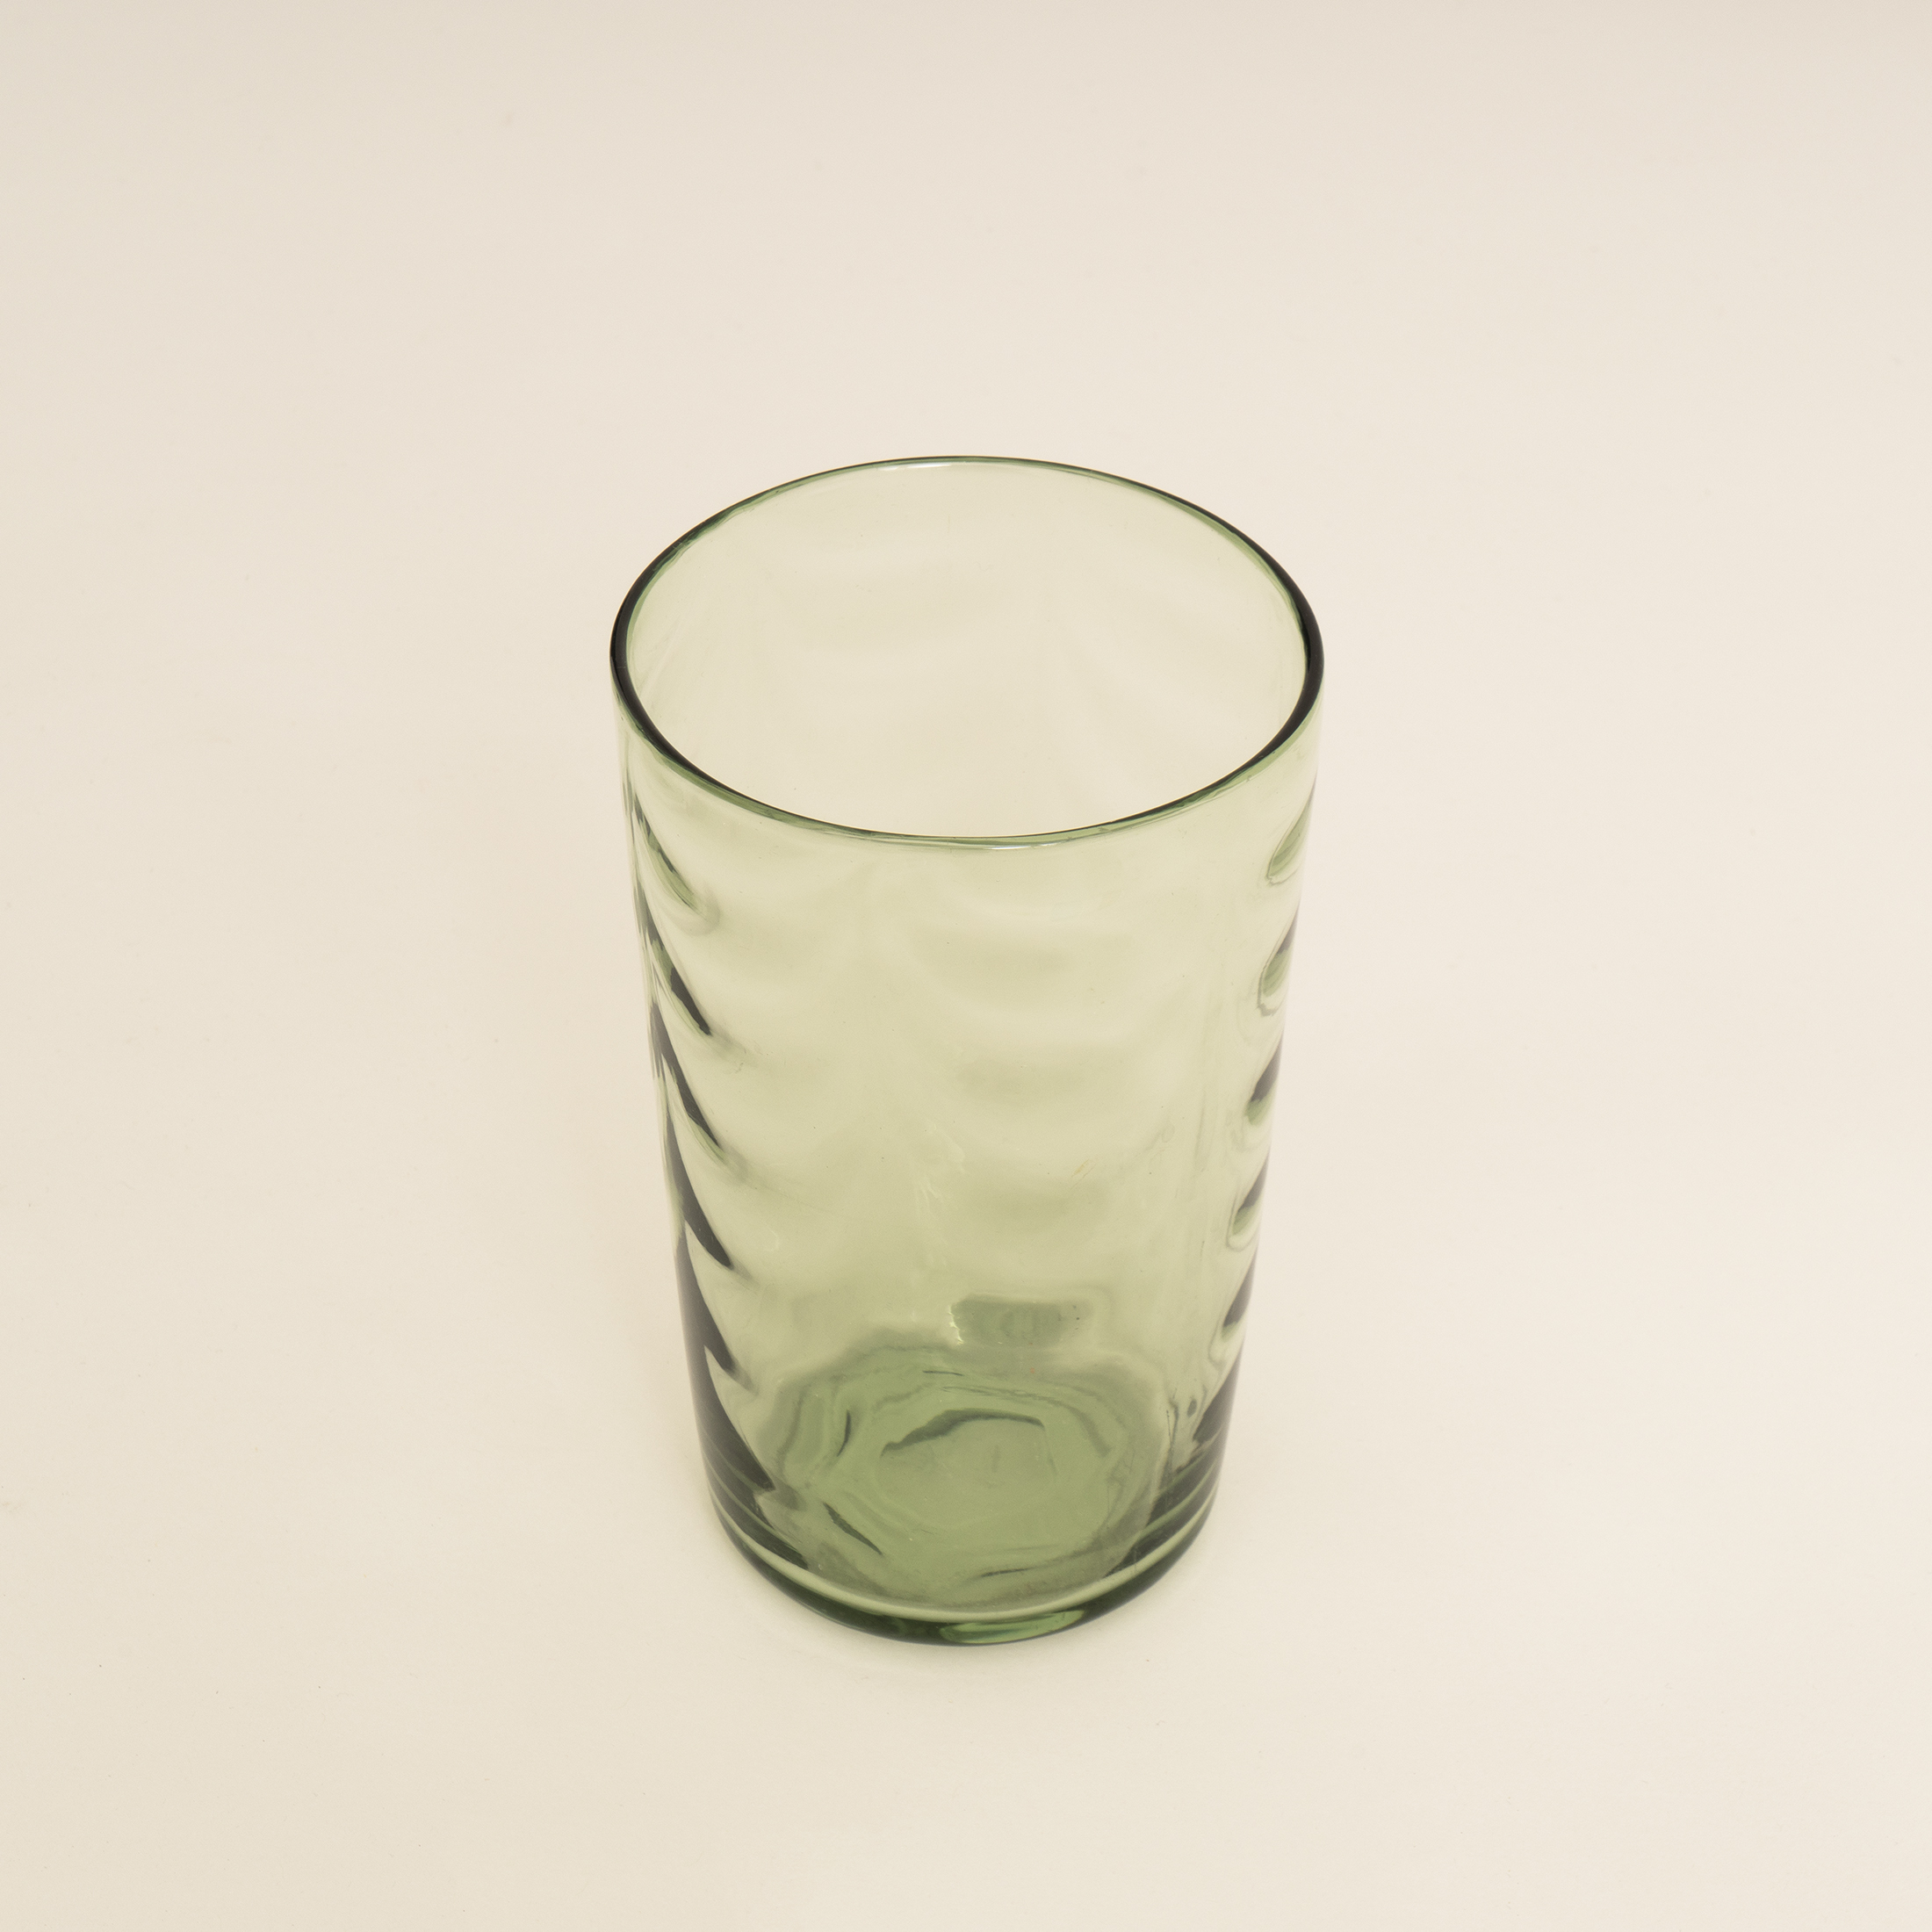 The image for Glass Vase 4 1279